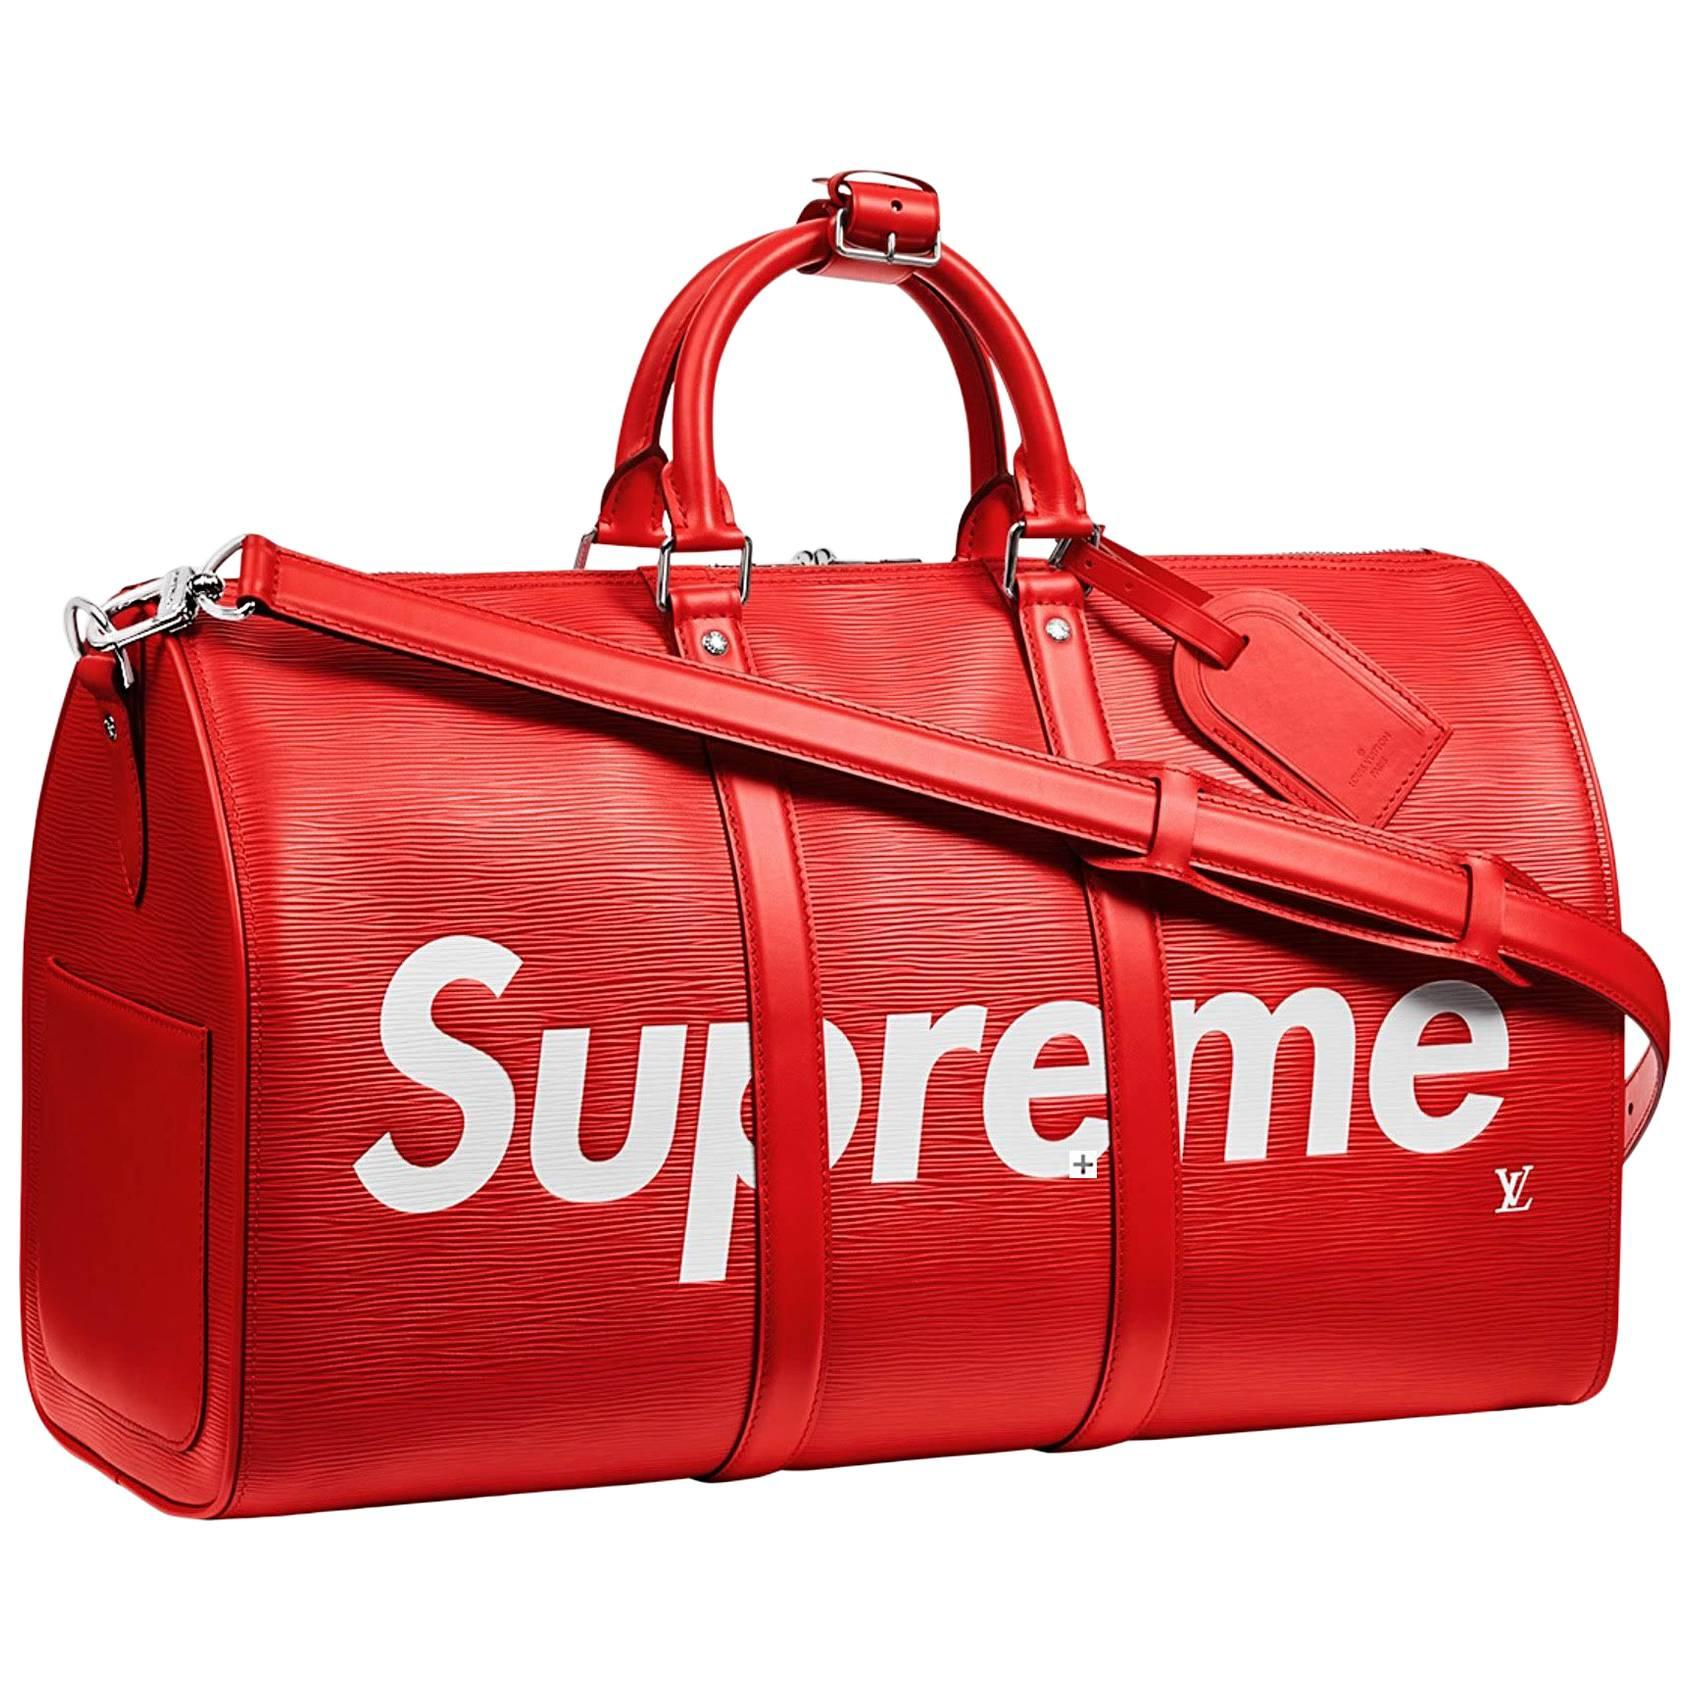 6abf5484bfb Louis Vuitton X Supreme Red Epi Keepall Bandouliere Duffle Bag 45 For Sale  at 1stdibs